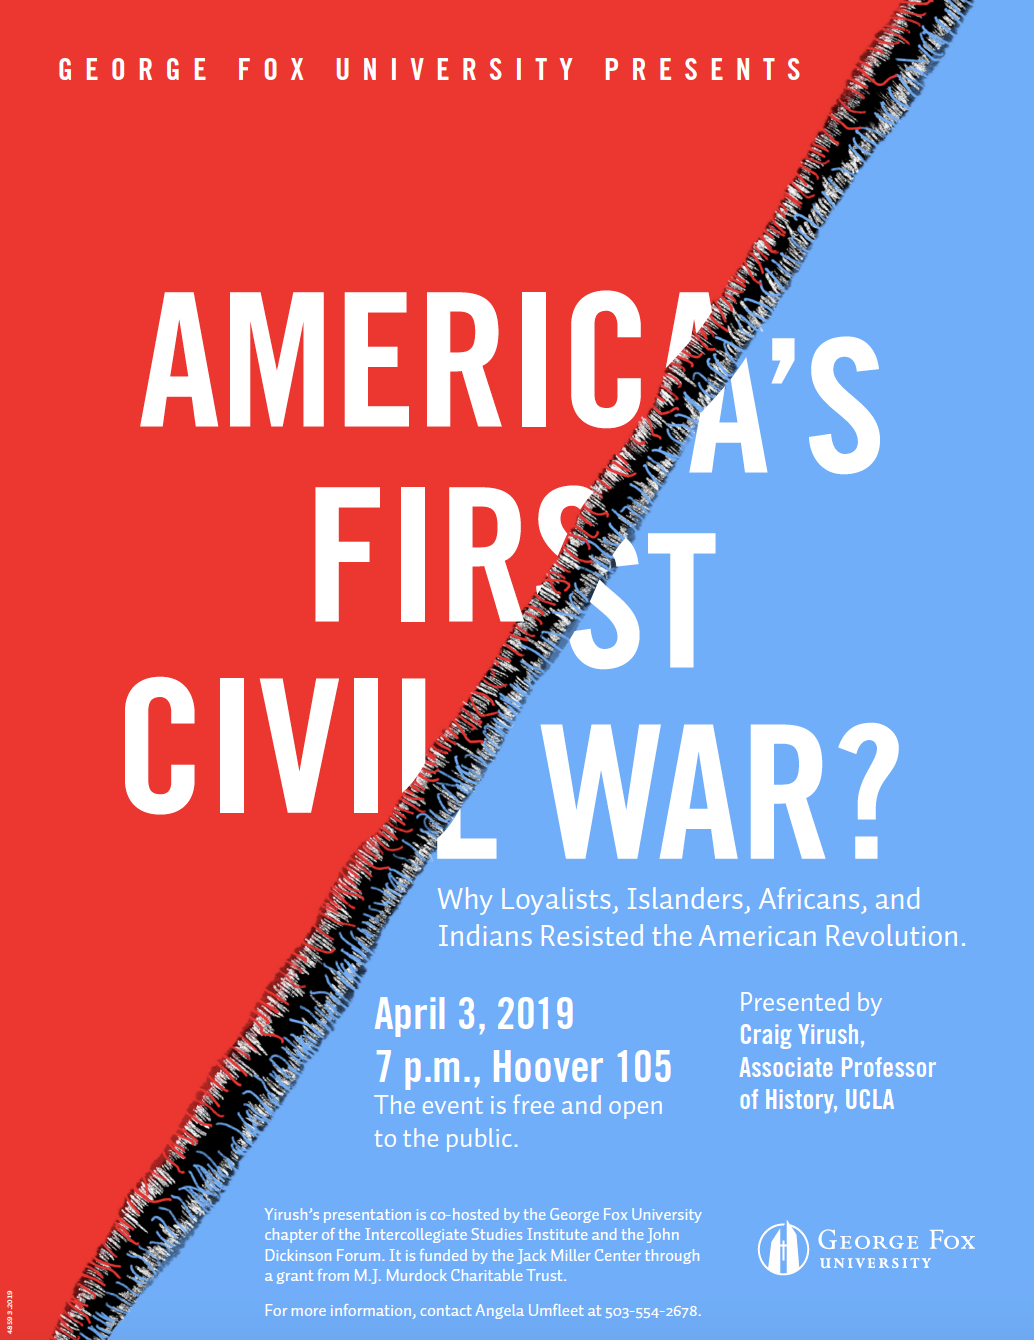 America's First Civil War? poster